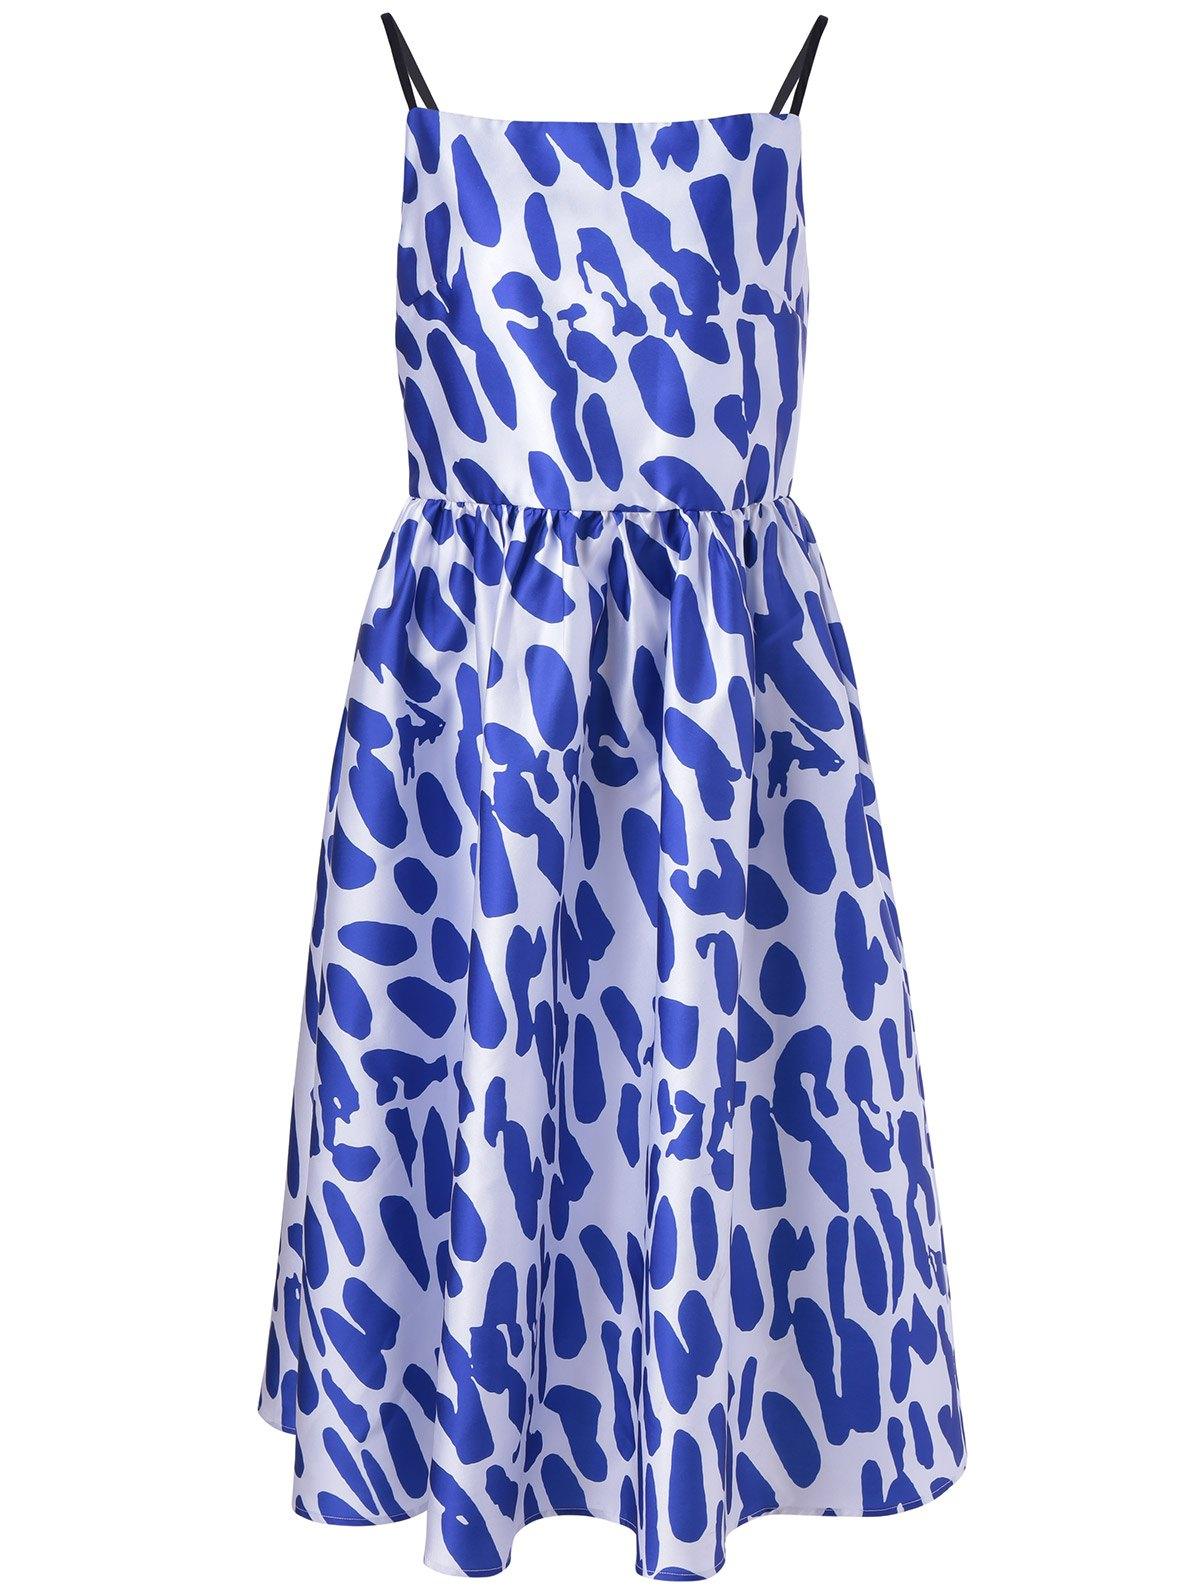 Fashionable Loose-Fitting Spaghetti Strap Dress With Printing For Women